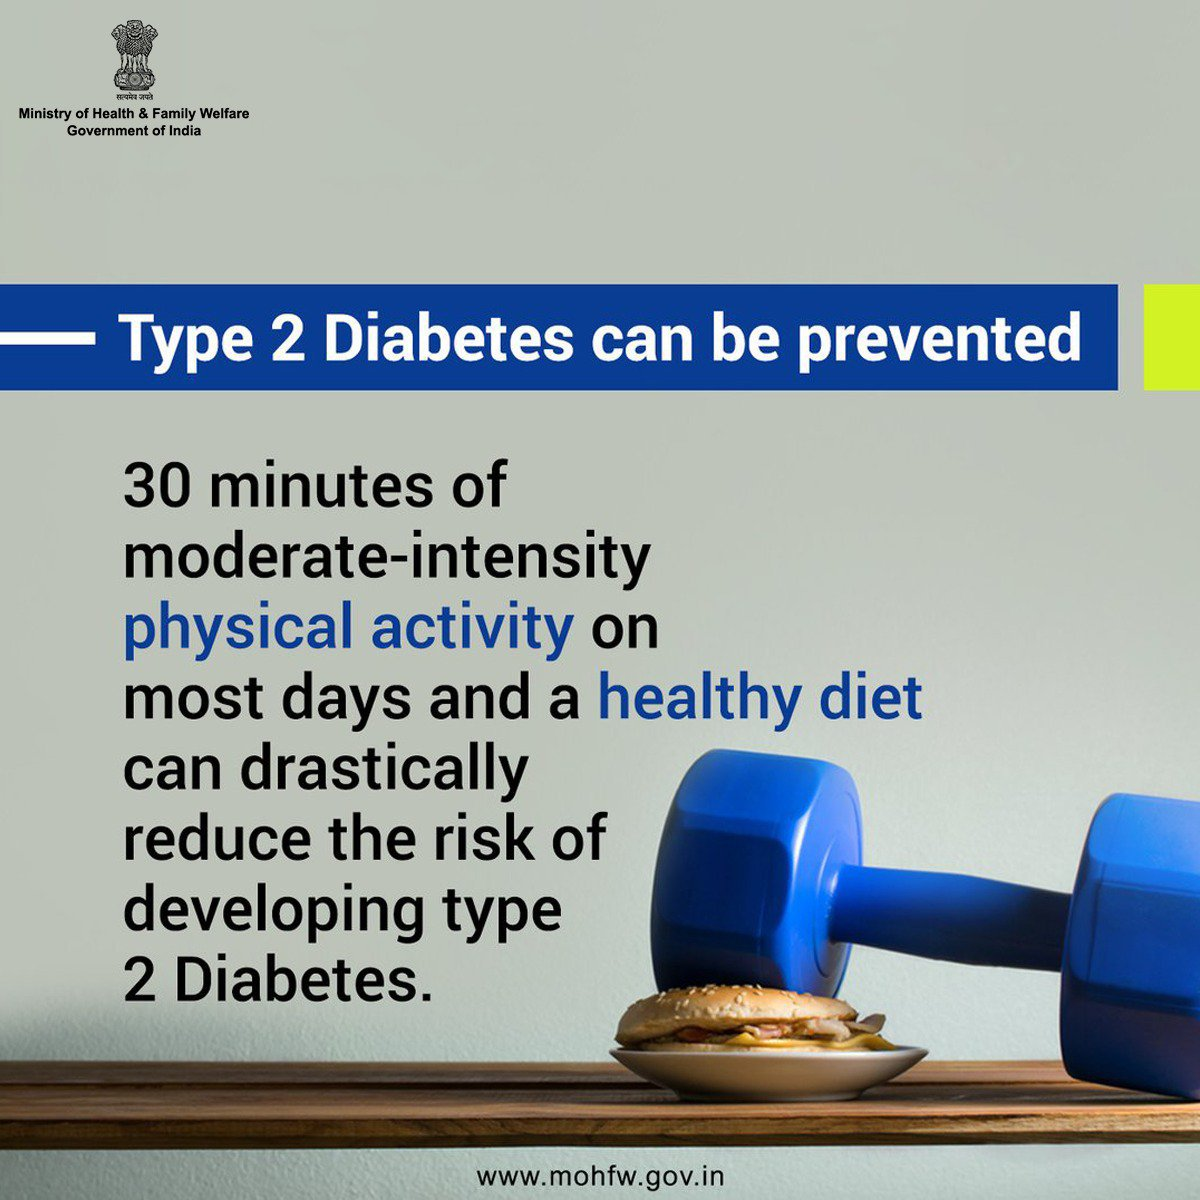 test Twitter Media - With type 2 #Diabetes, the body either doesn't produce enough #insulin, or it resists insulin. You can prevent it by self-care. https://t.co/78L7M0UP90.  #BeatNCDs #SwasthaBharat https://t.co/MwDoZ5bTnN